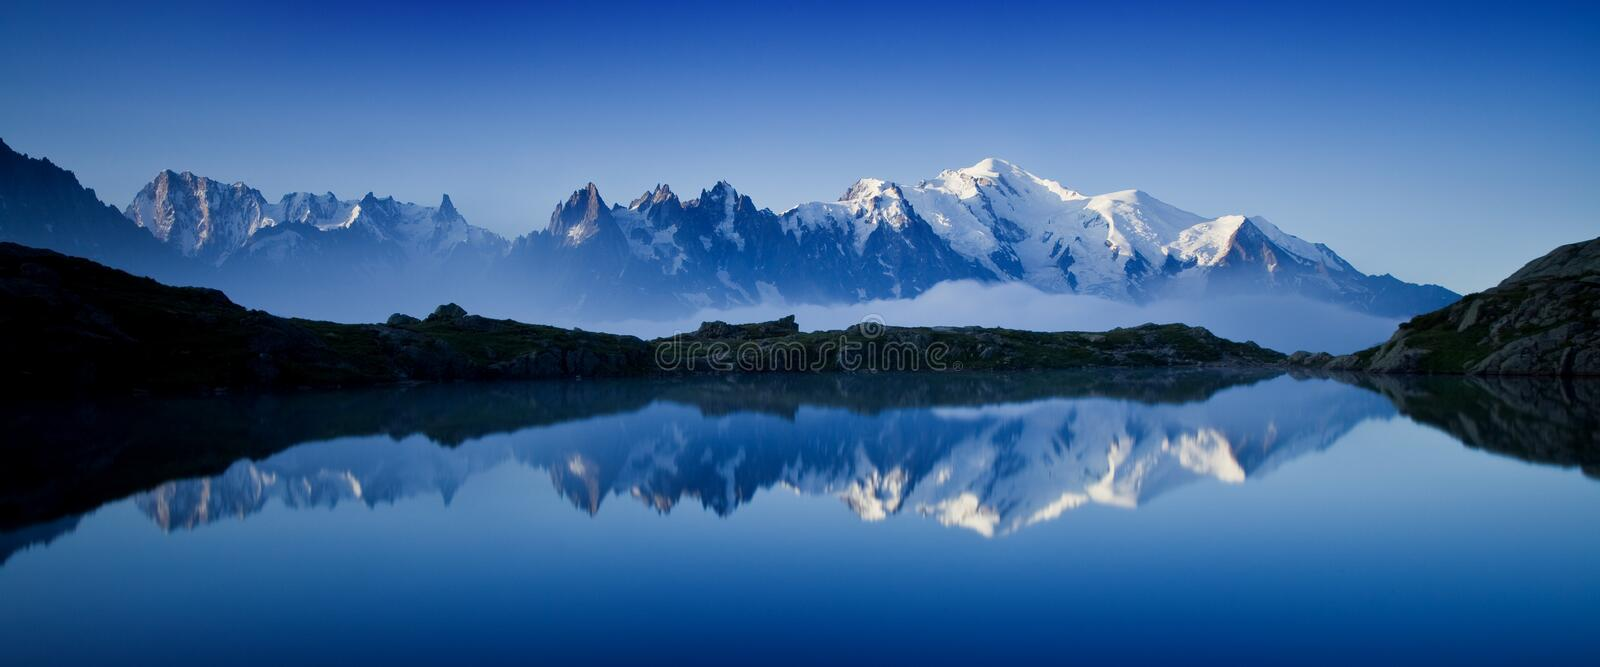 Views of the Mont Blanc glacier from Lac Blanc. Popular tourist attraction. Picturesque and gorgeous mountain scene. stock images